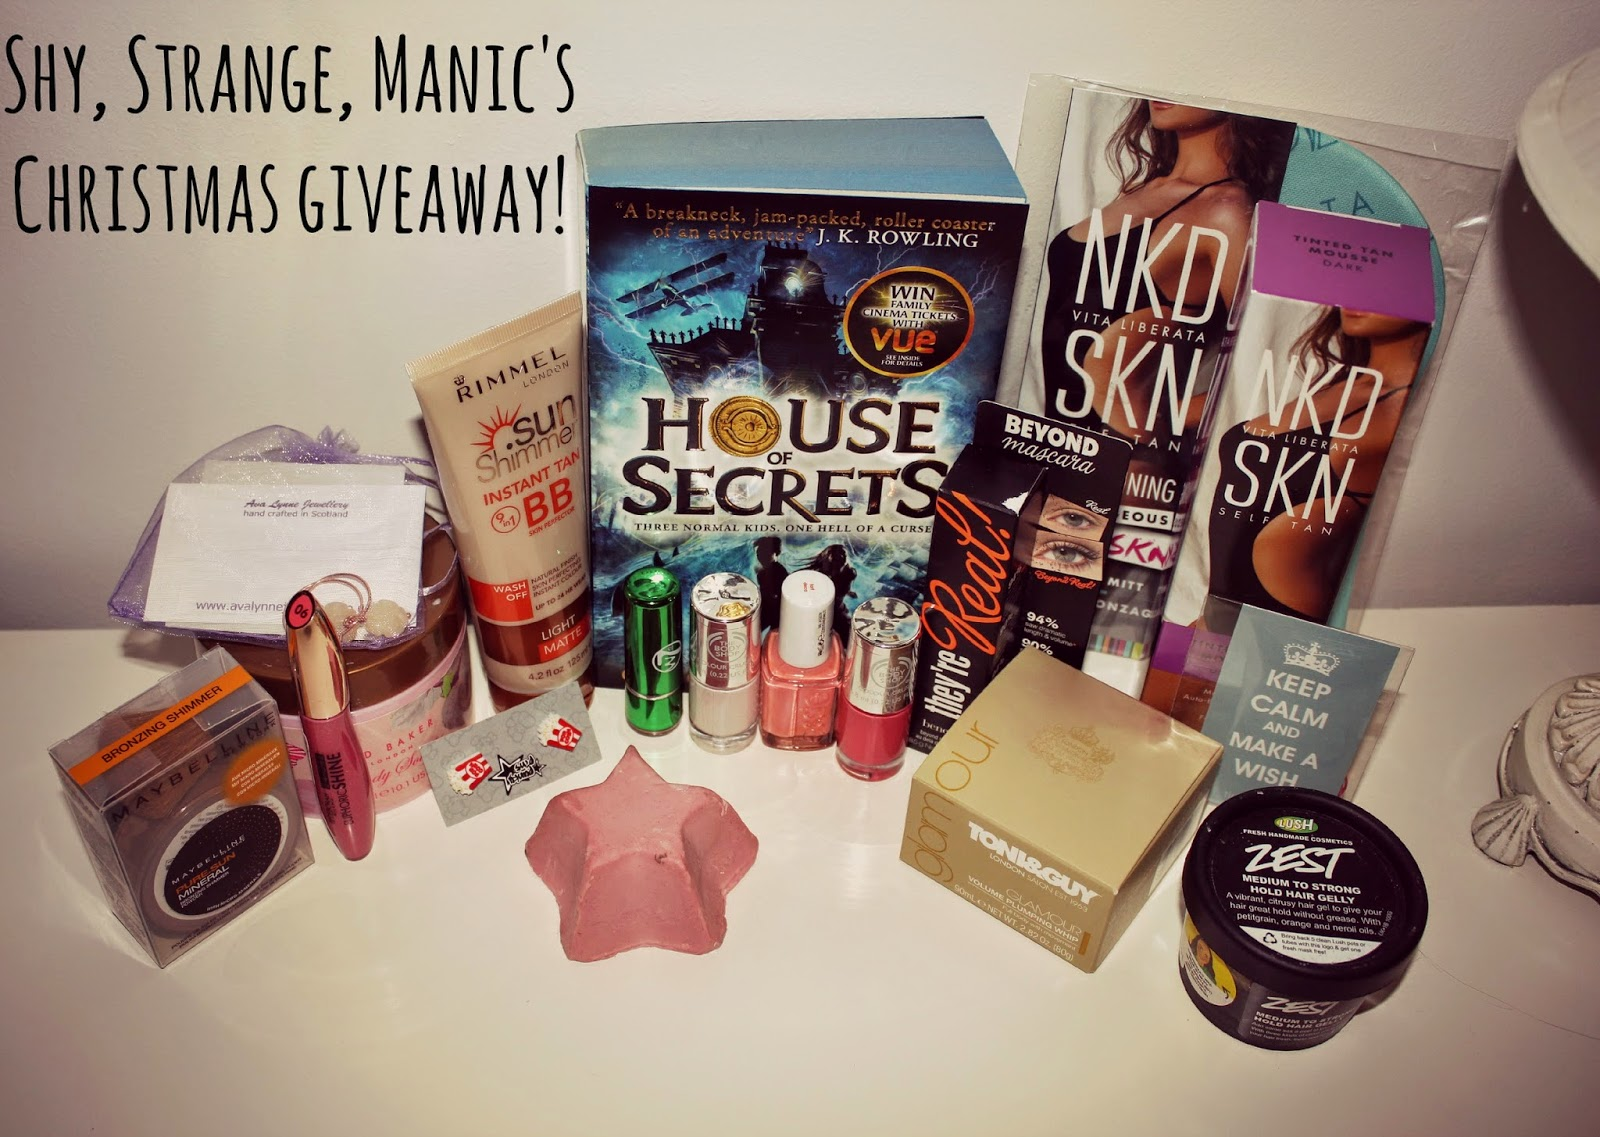 Christmas giveaway!  Over £100 worth of glamorous goodies including Lush, Benefit and loads more!